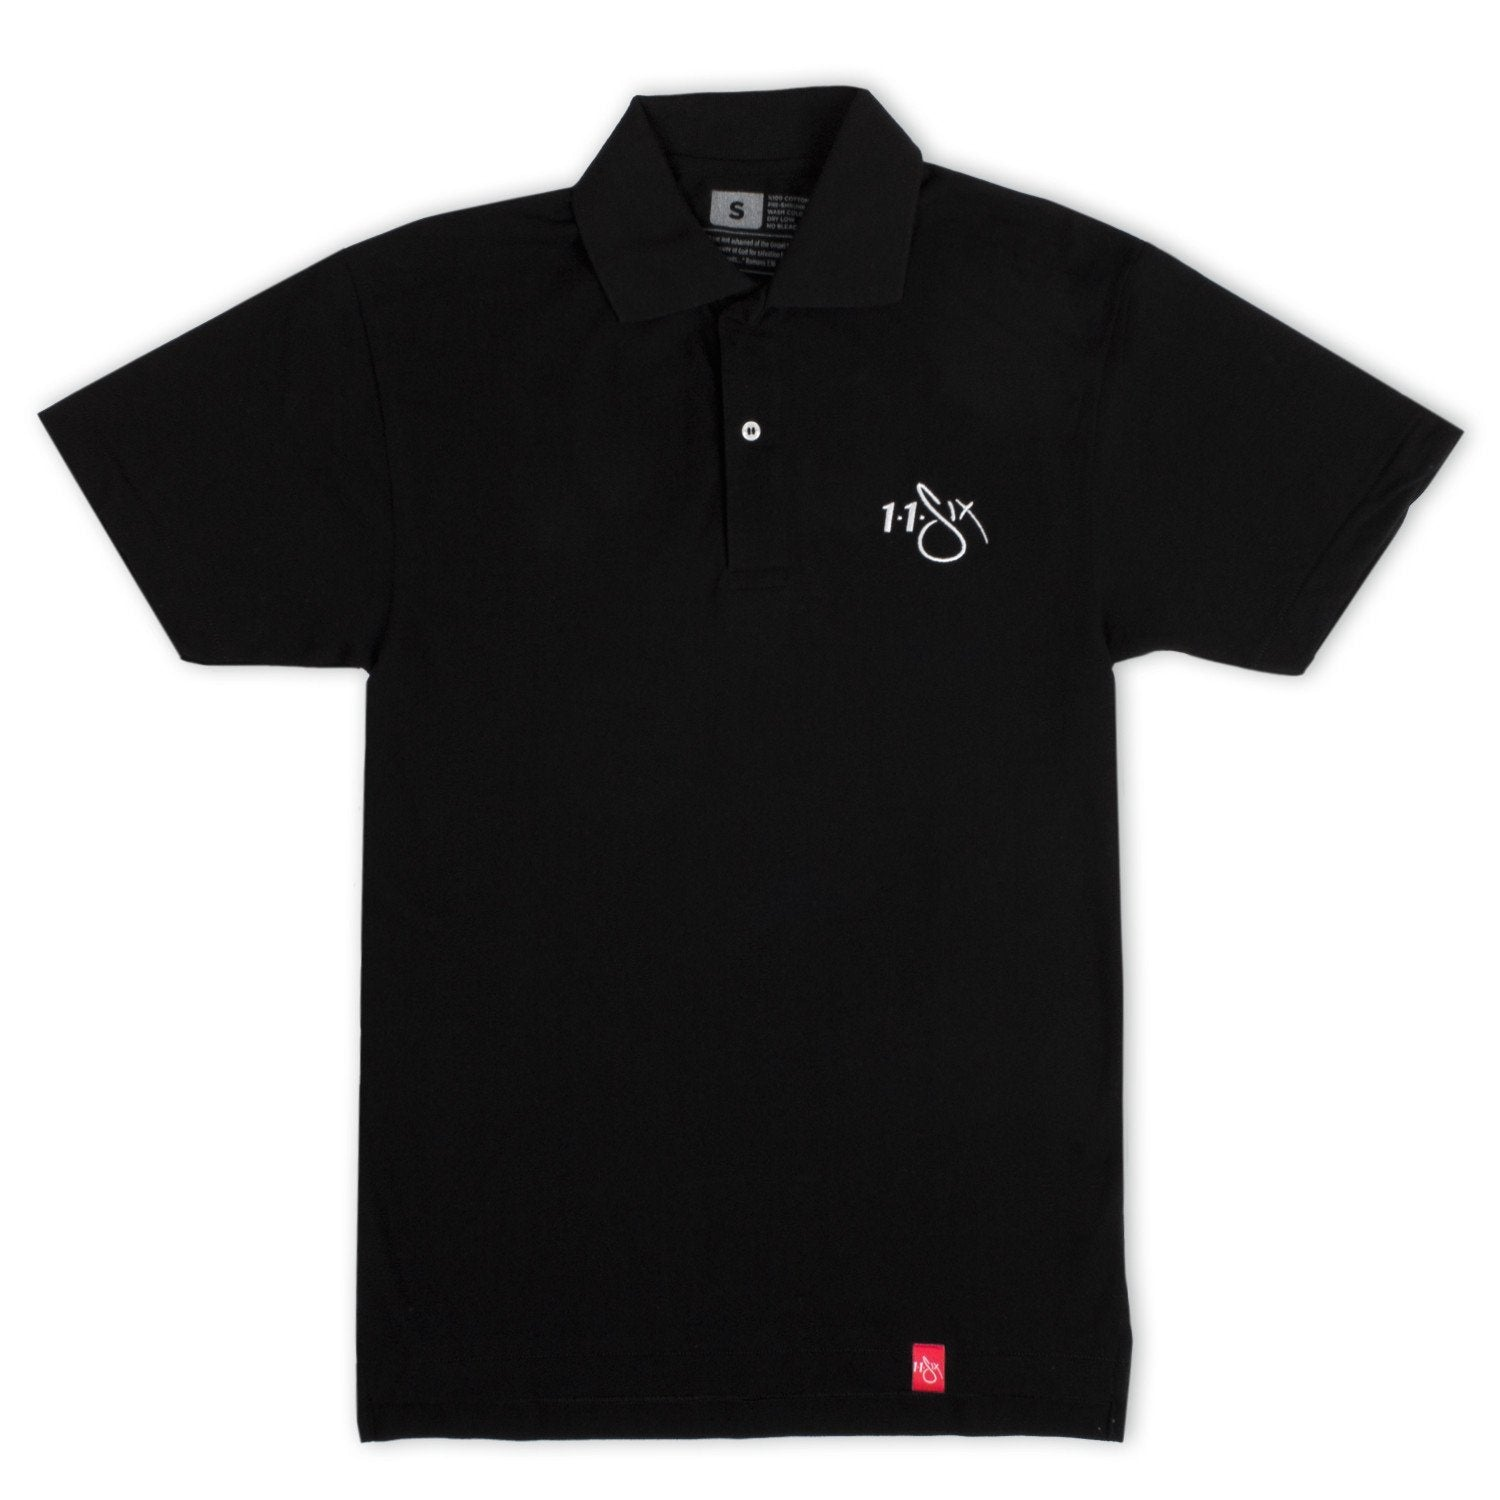 Reach Records 116 'Red Label' Polo